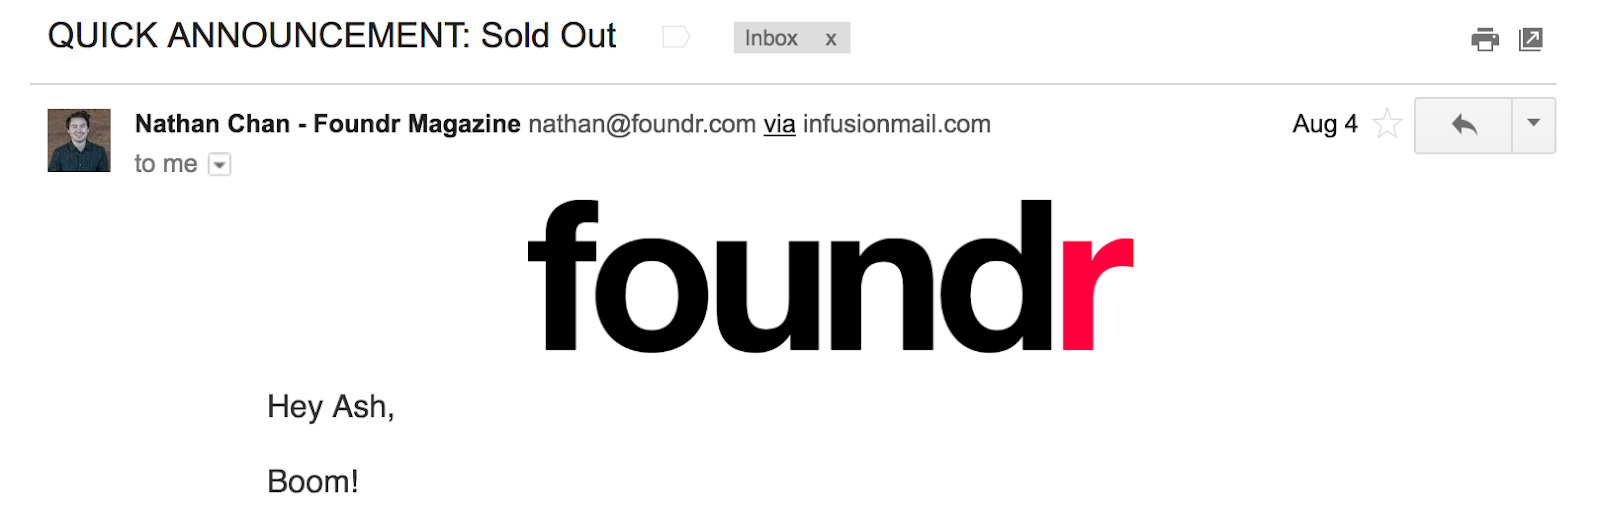 Best Email Subject Lines: Screenshot of email from Foundr